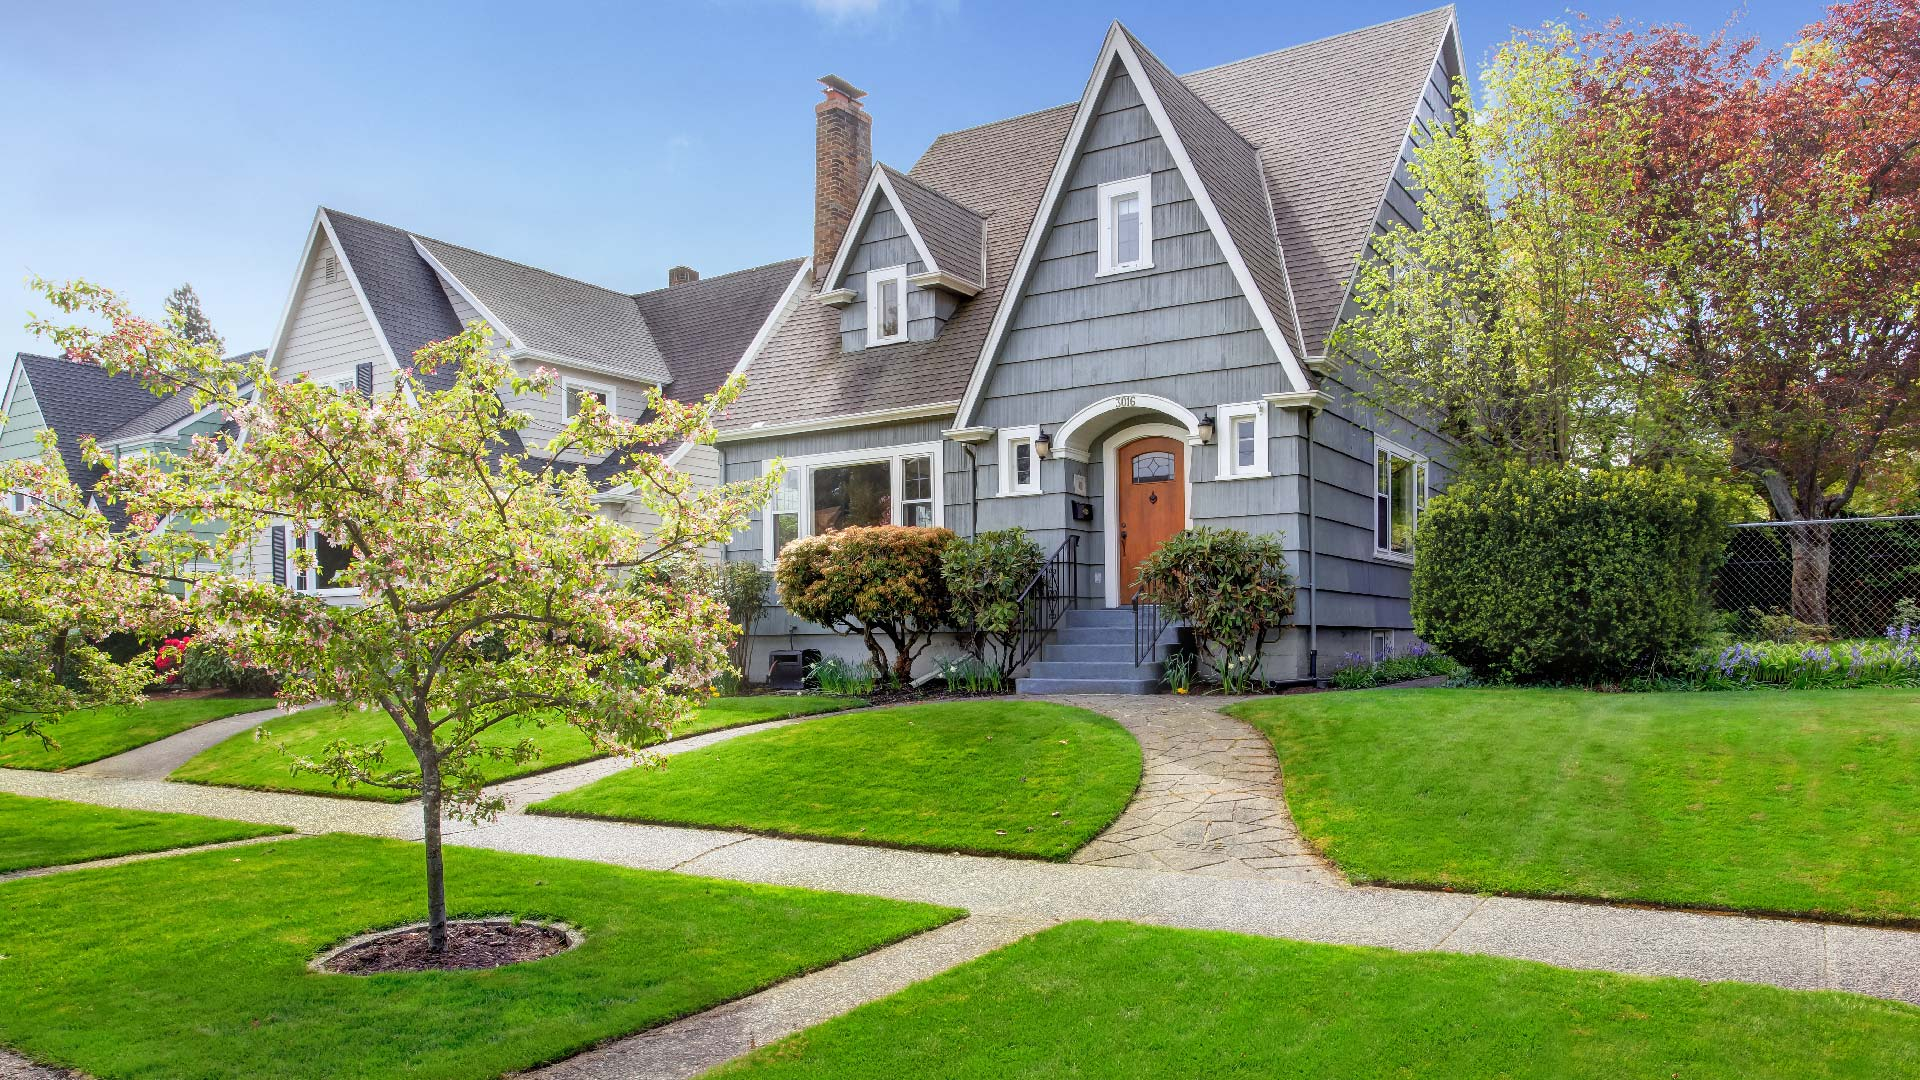 gray house with perfect front yard lawn